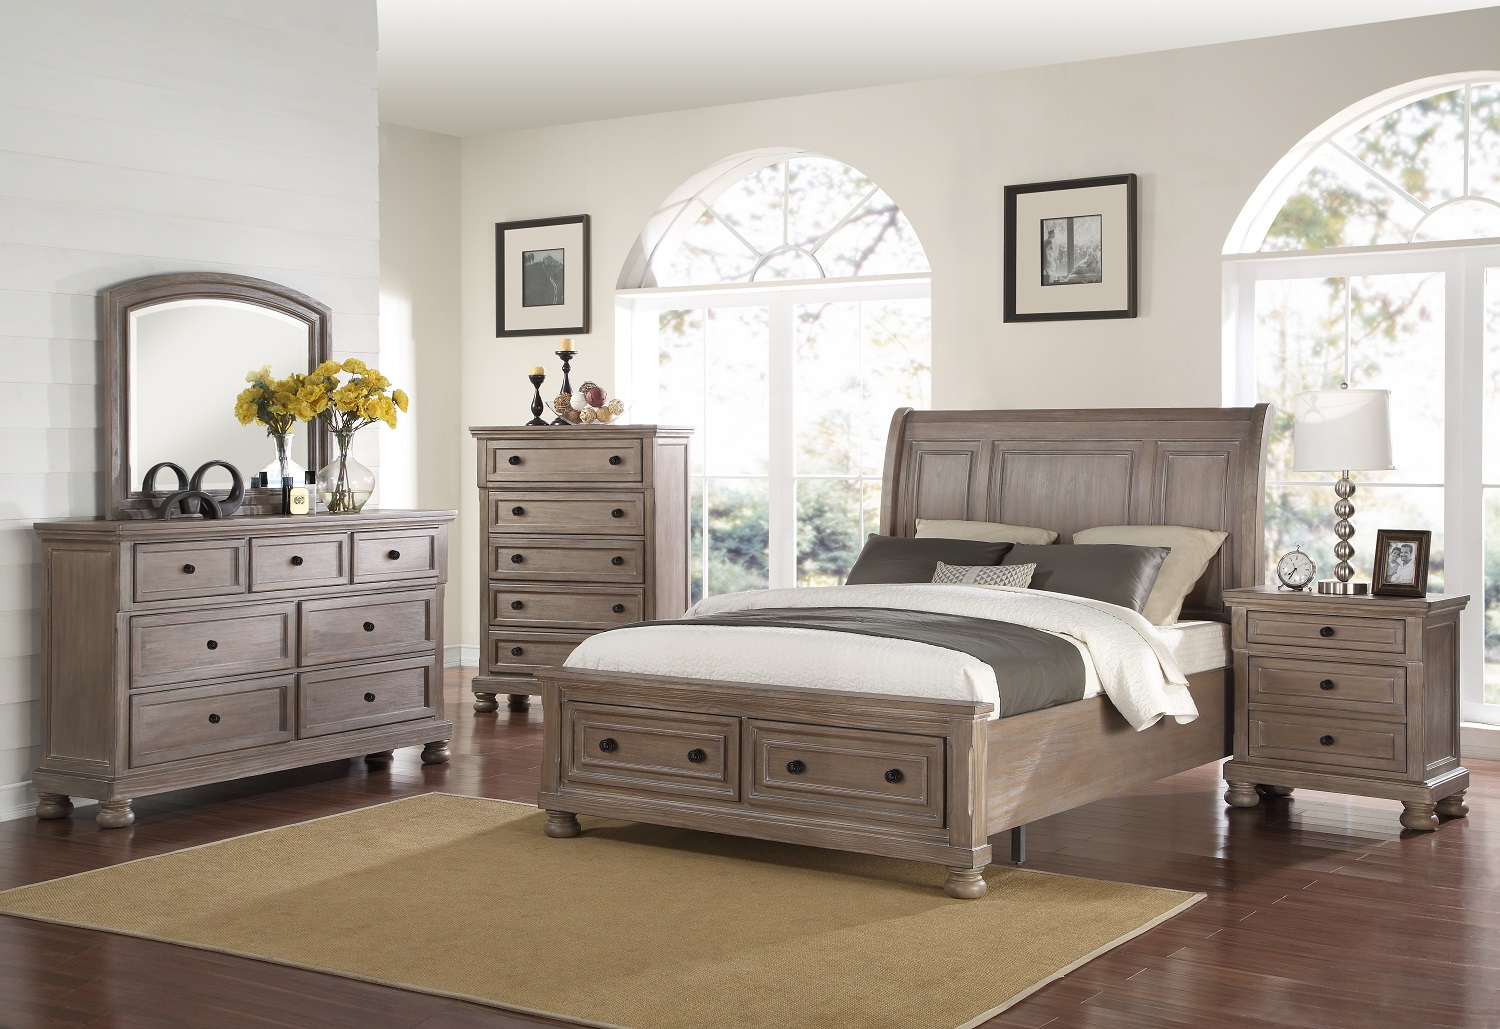 Allegra Bedroom Collection Image